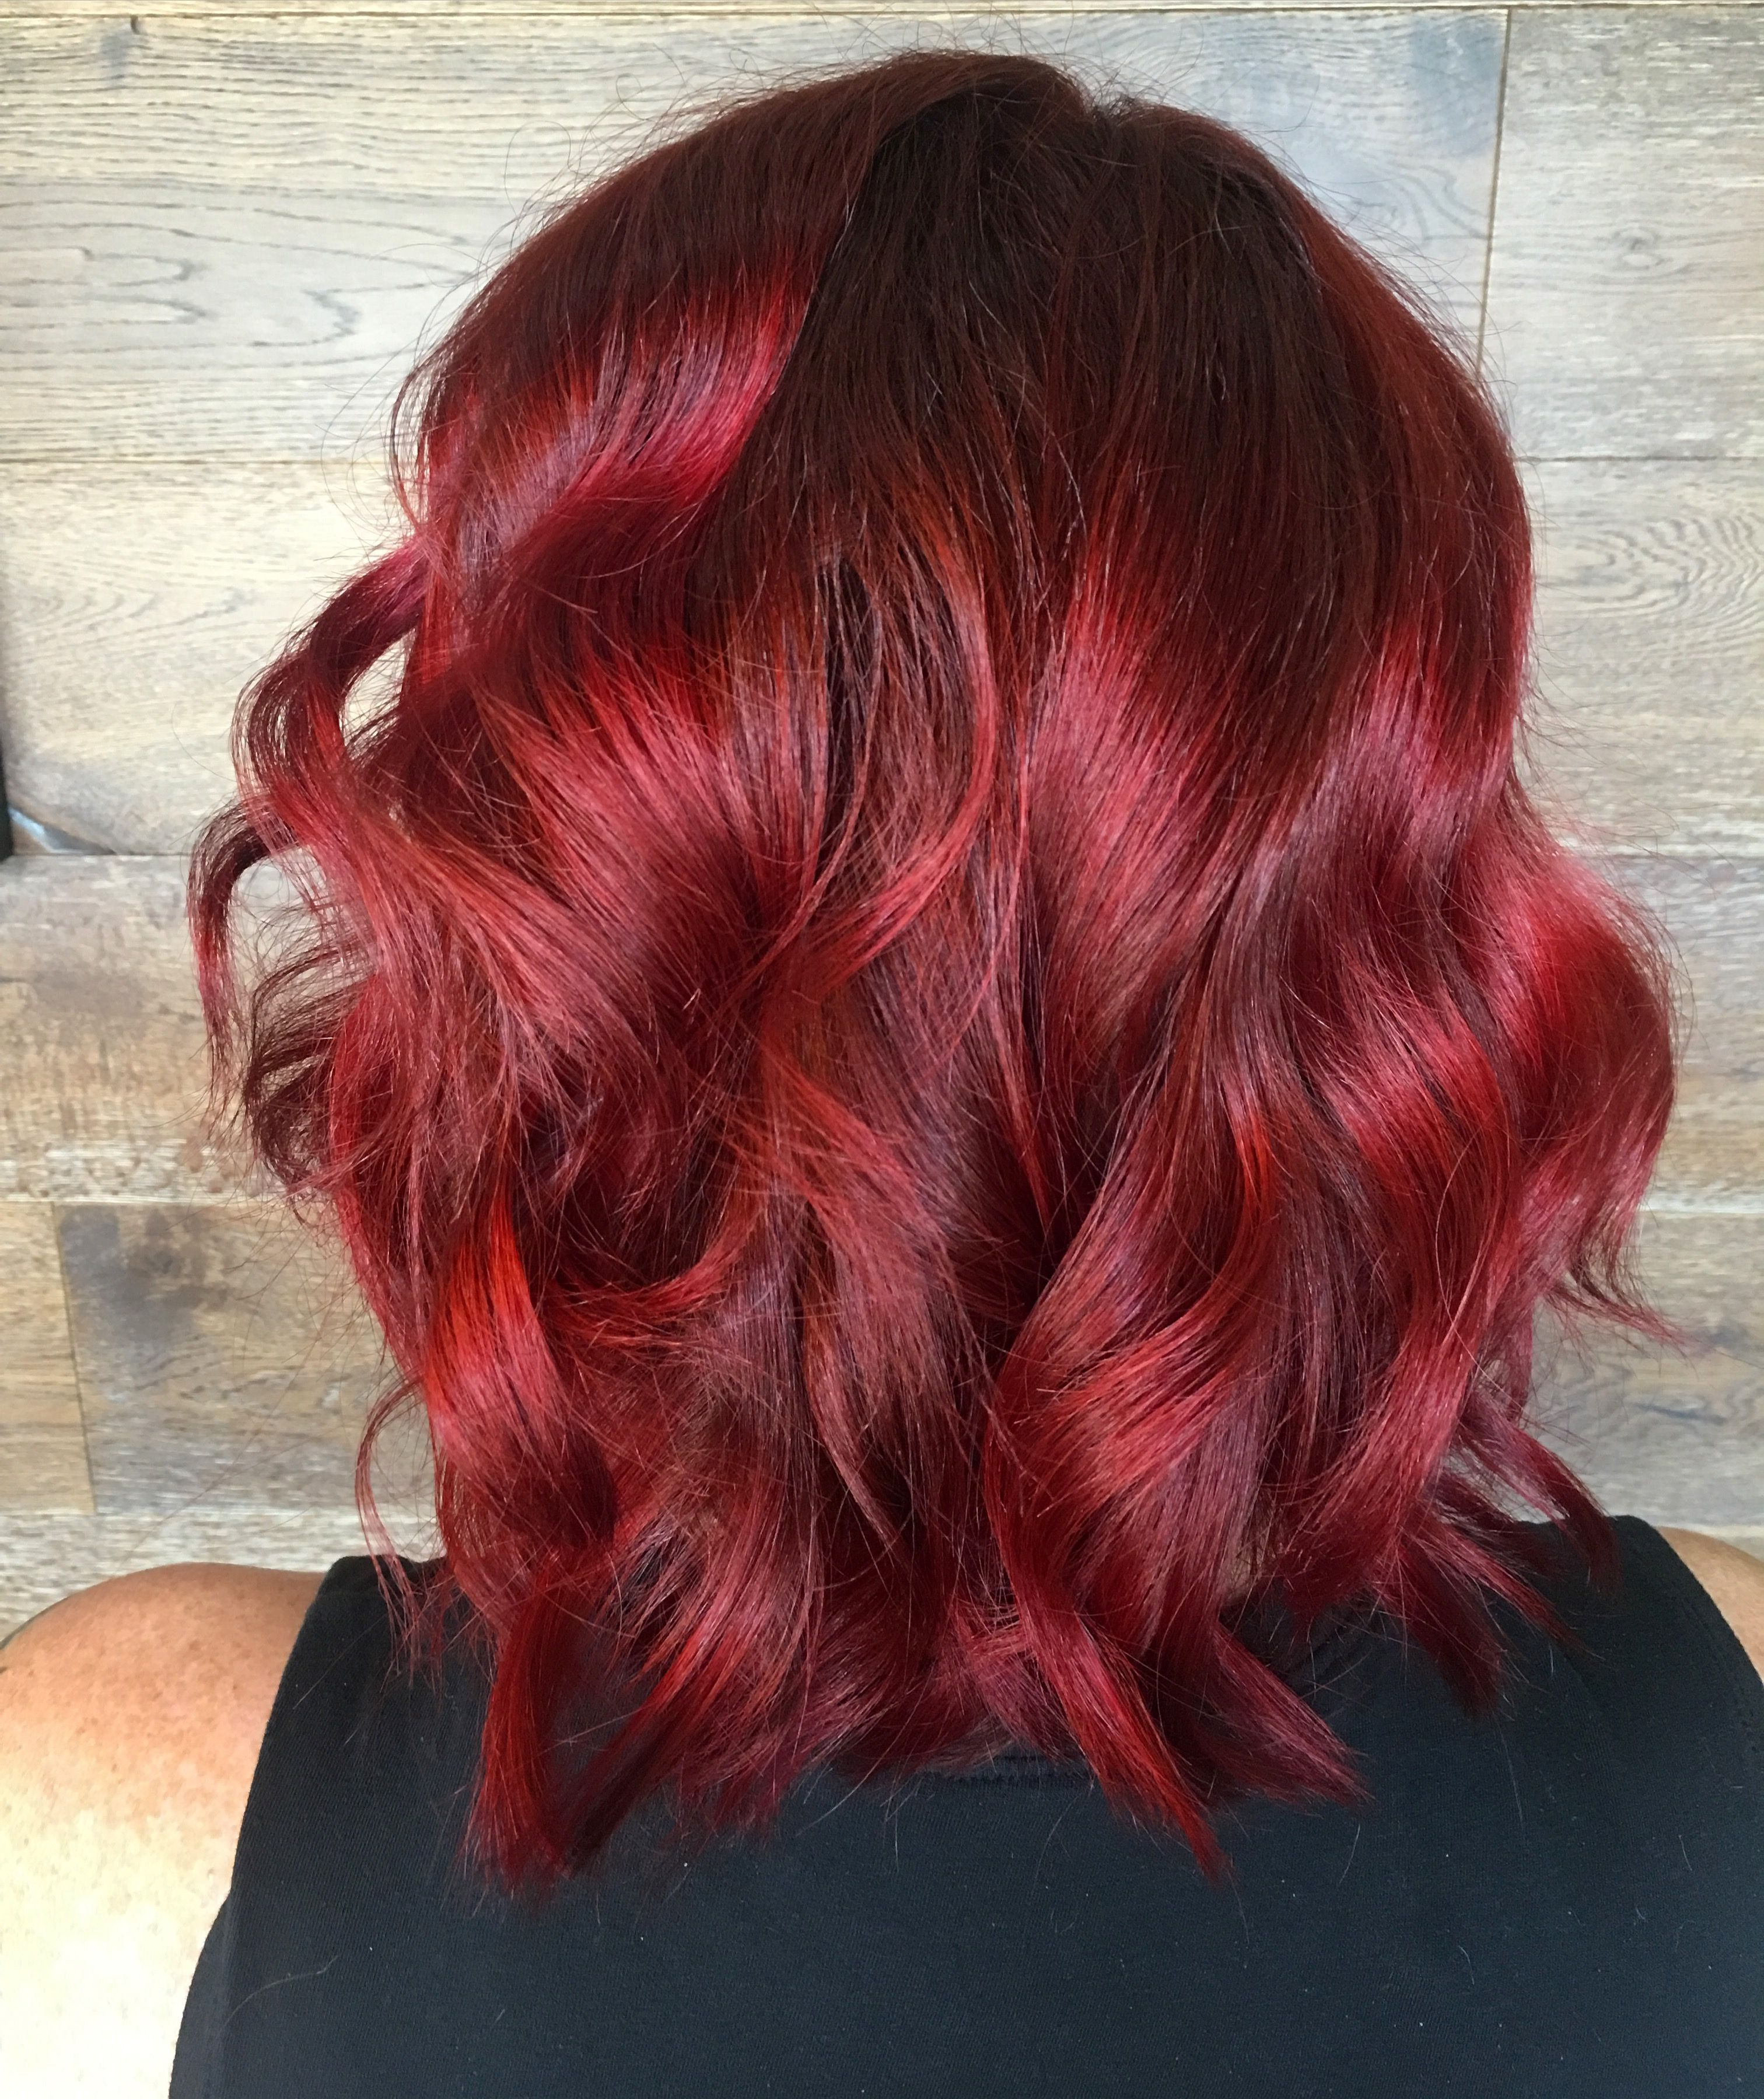 Fiery Red With Red Violet Shadow Root Vibrant Red Bright Red Ombre Ombre Hair Blonde Hair Color Hair Shadow